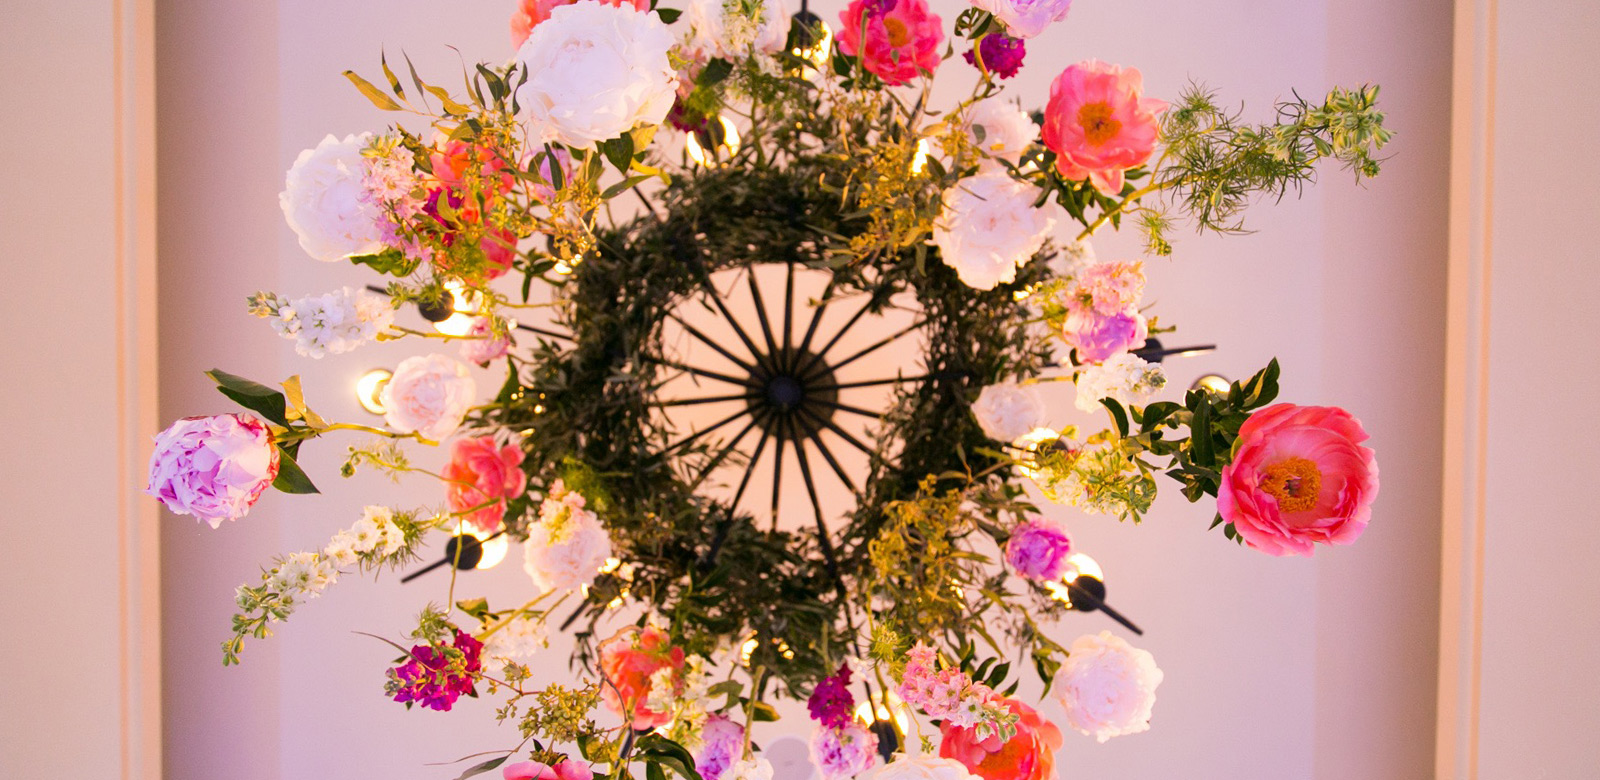 Floral Chandelier - Allegro Photography